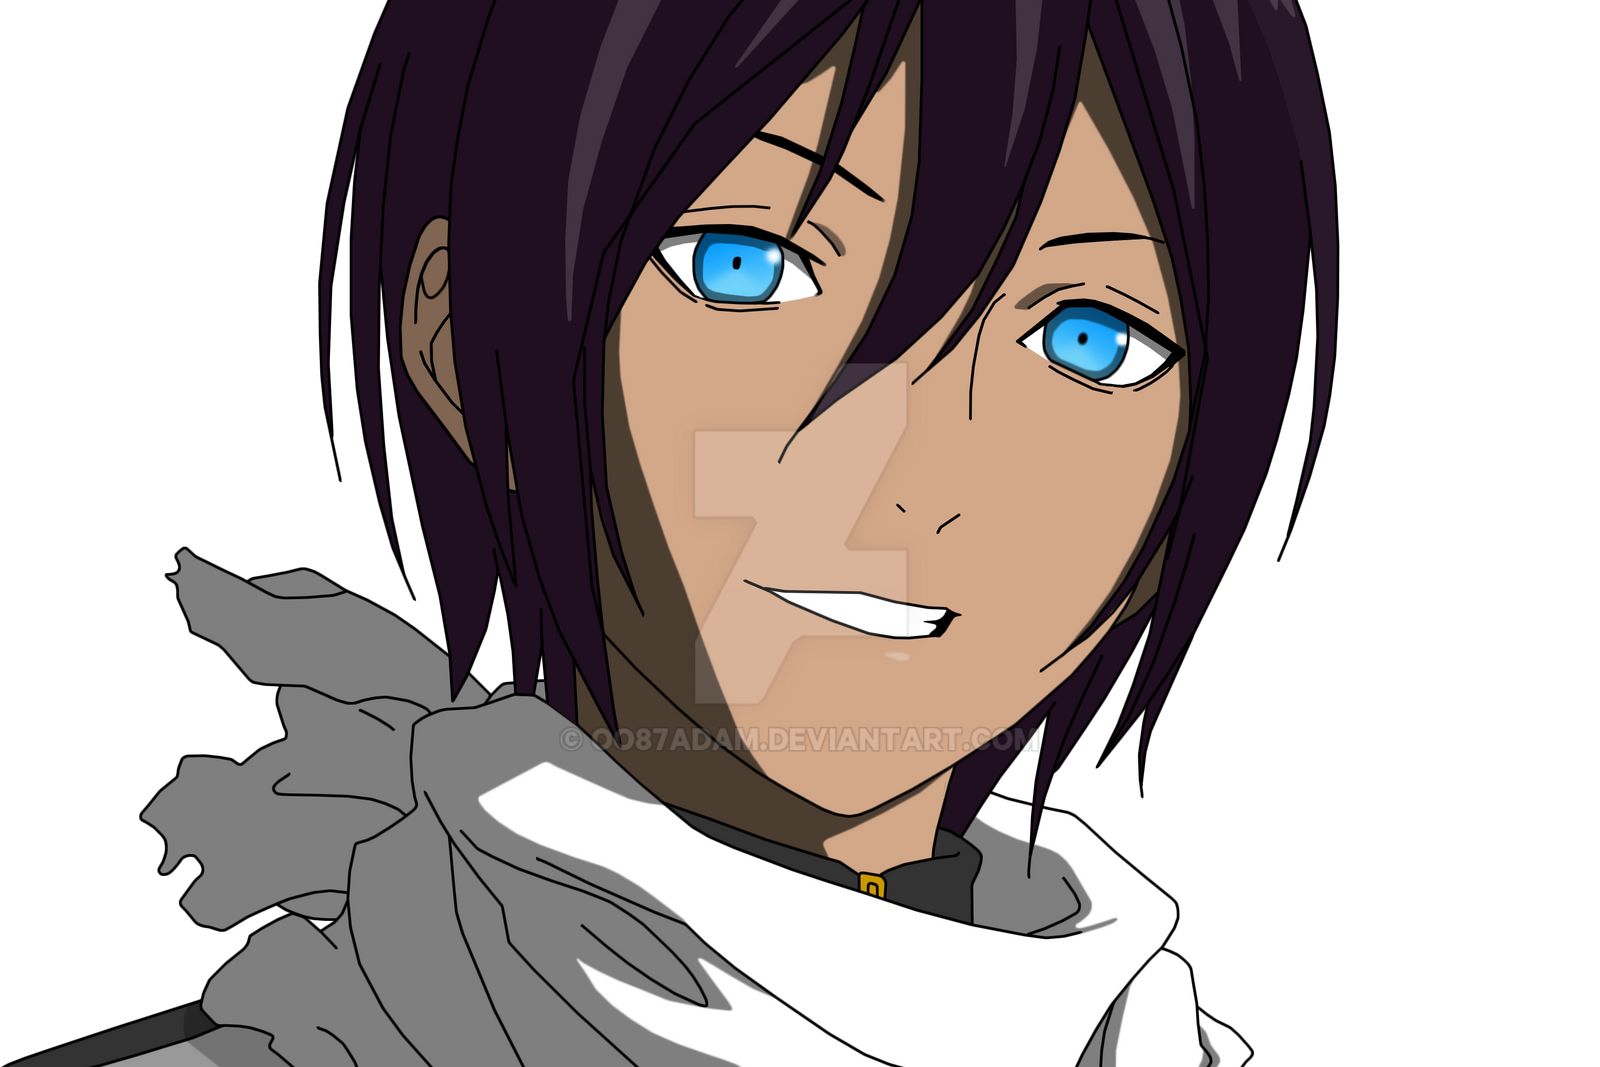 Delivery god of calamity yato by oo87adam on deviantart